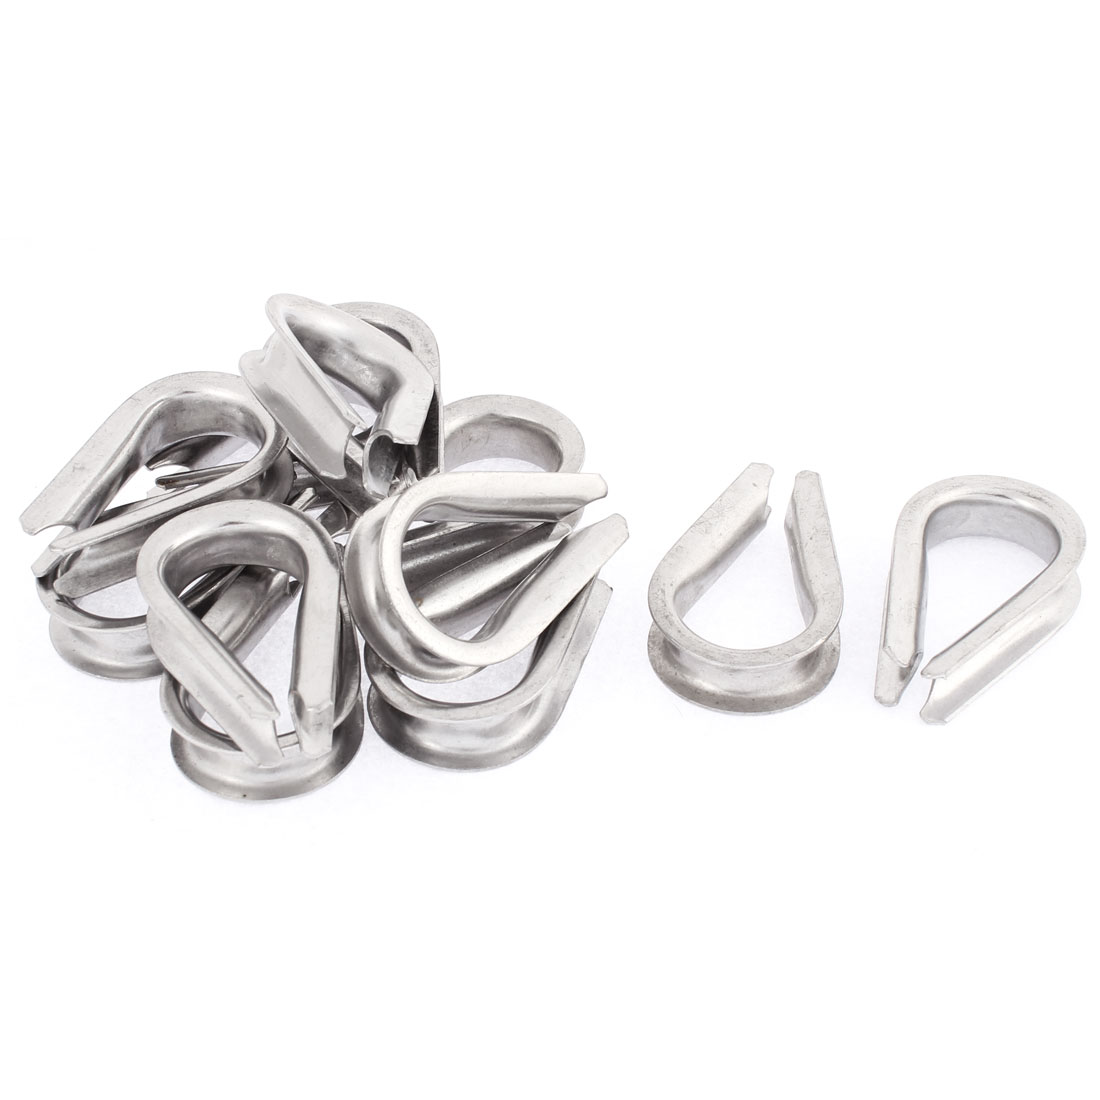 12mm Standard Wire Rope Cable Thimbles Rigging Lifting Gear 12pcs